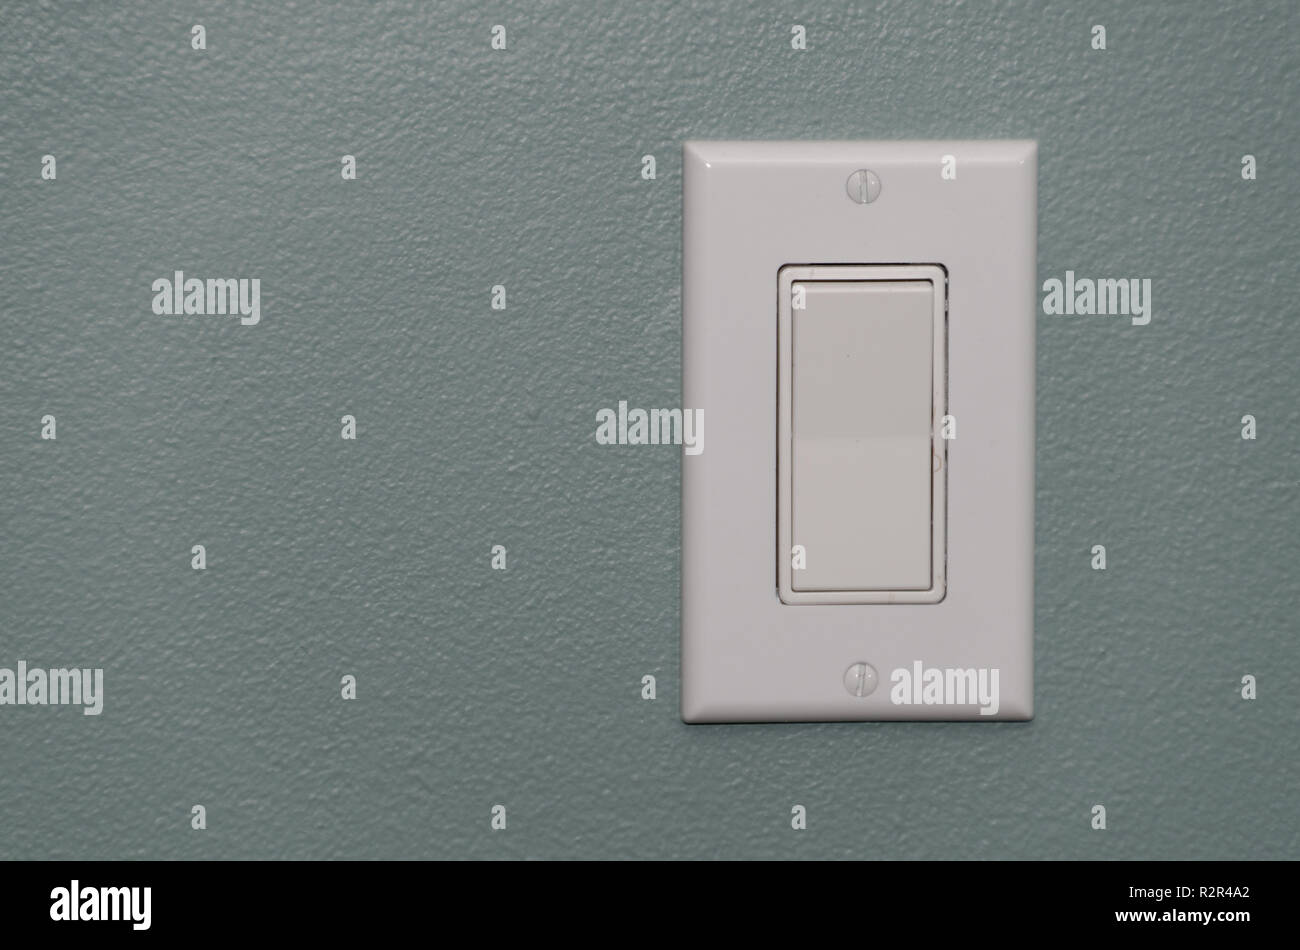 North American style light switch 110V - 120V - Stock Image